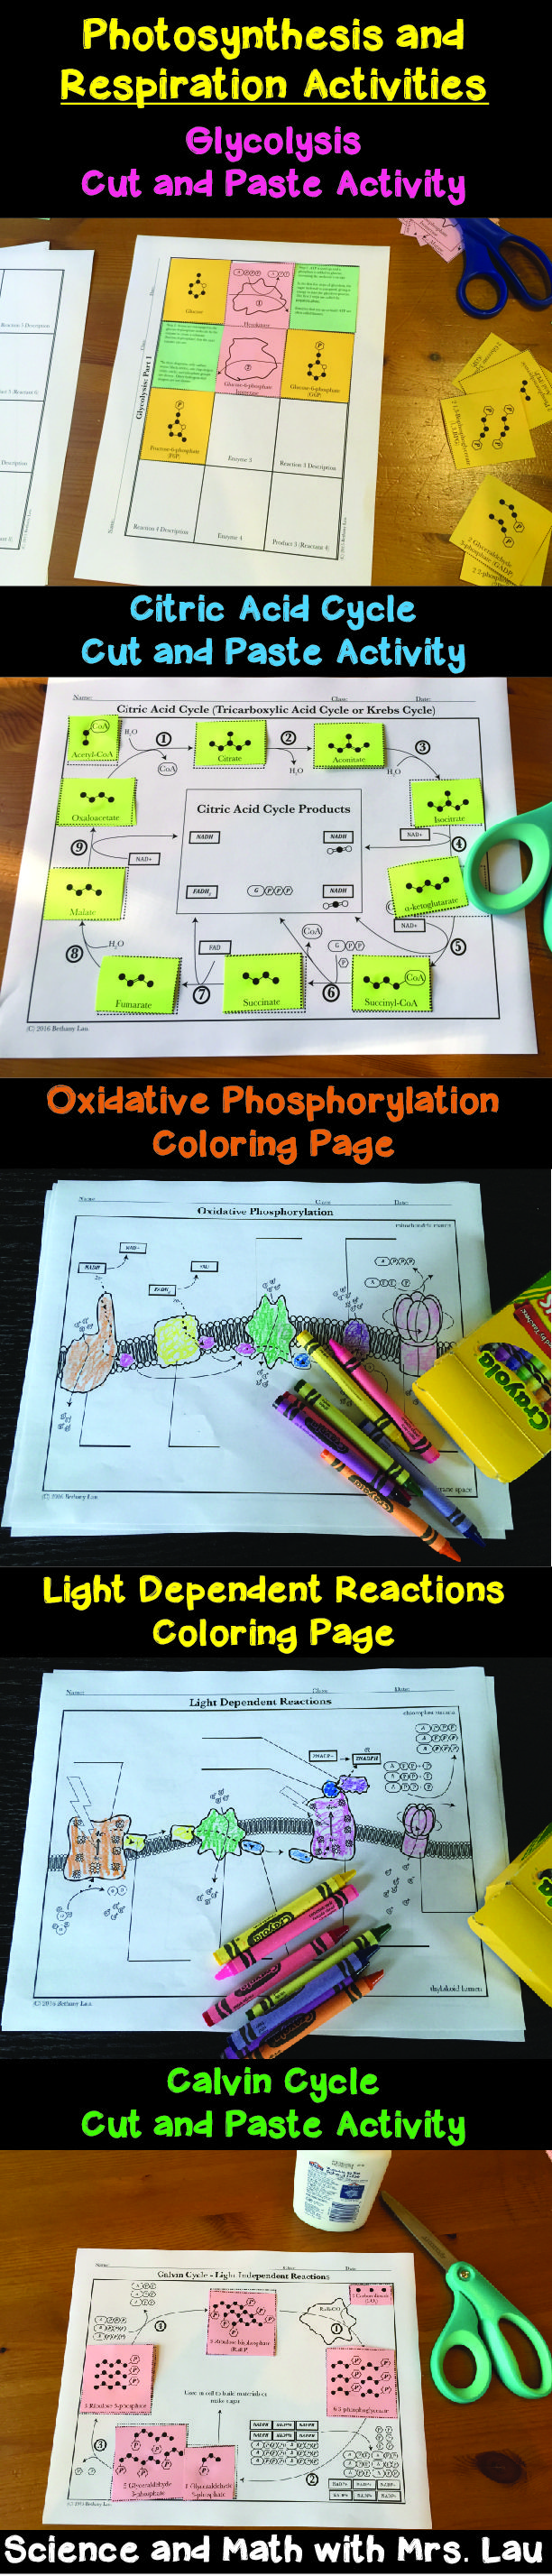 Photosynthesis and Respiration Activities for High School Biology: Coloring Pages and Cut-and-Paste Activities for Glycolysis, Citric Acid Cycle, Oxidative Phosphorylation, Light Reactions, and the Calvin Cycle! Science and Math with Mrs. Lau